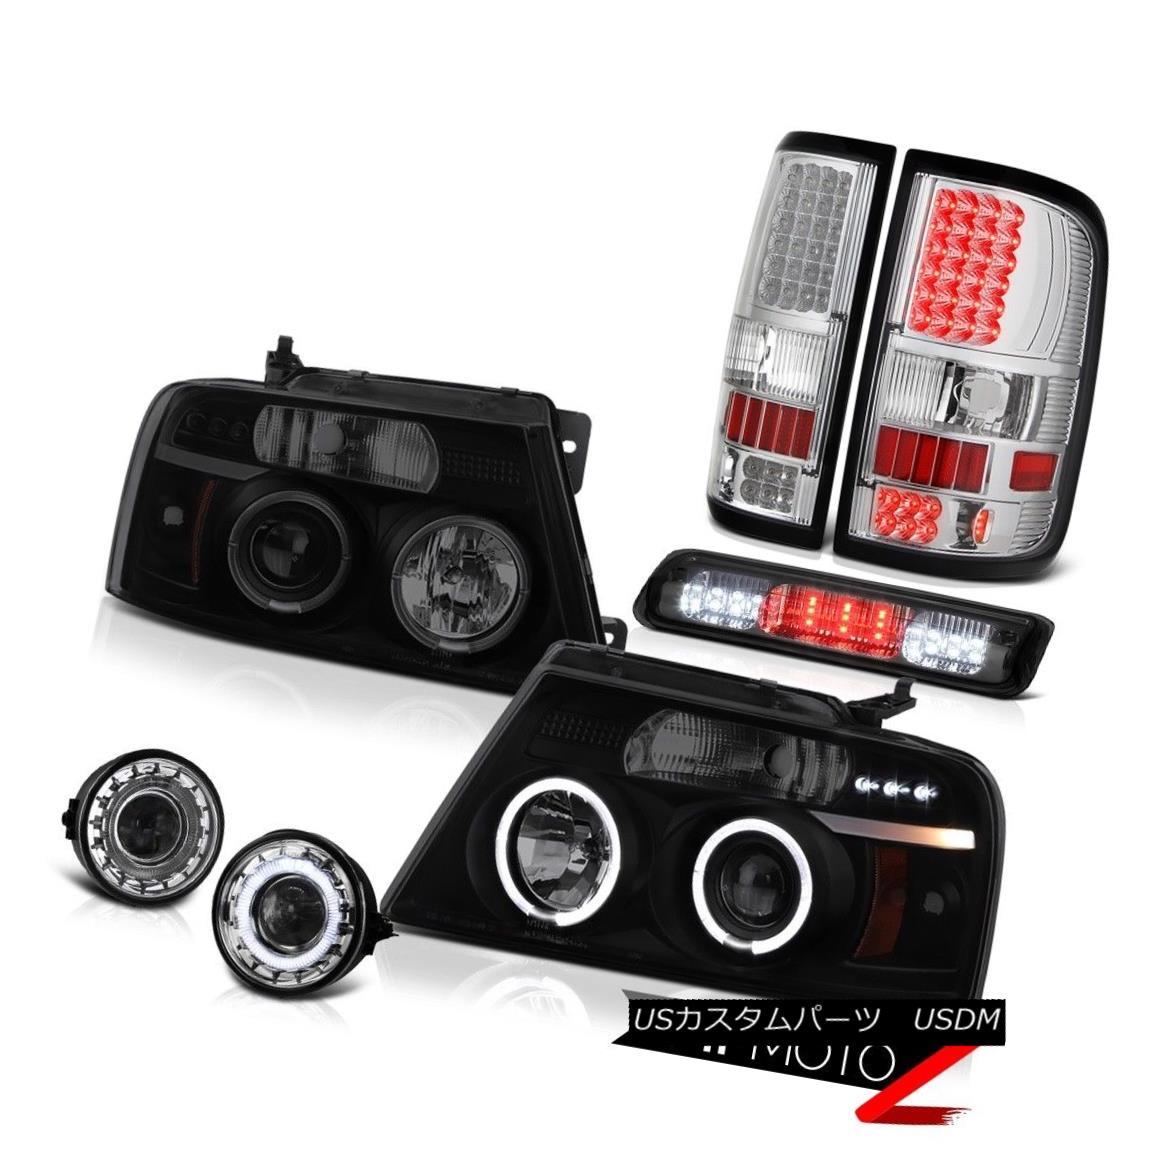 テールライト 06-08 Ford F150 Lariat Chrome Fog Lamps 3rd Brake Lamp Rear Headlights Halo Ring 06-08 Ford F150 Lariatクロームフォグランプ3rdブレーキランプリアヘッドライトHalo Ring